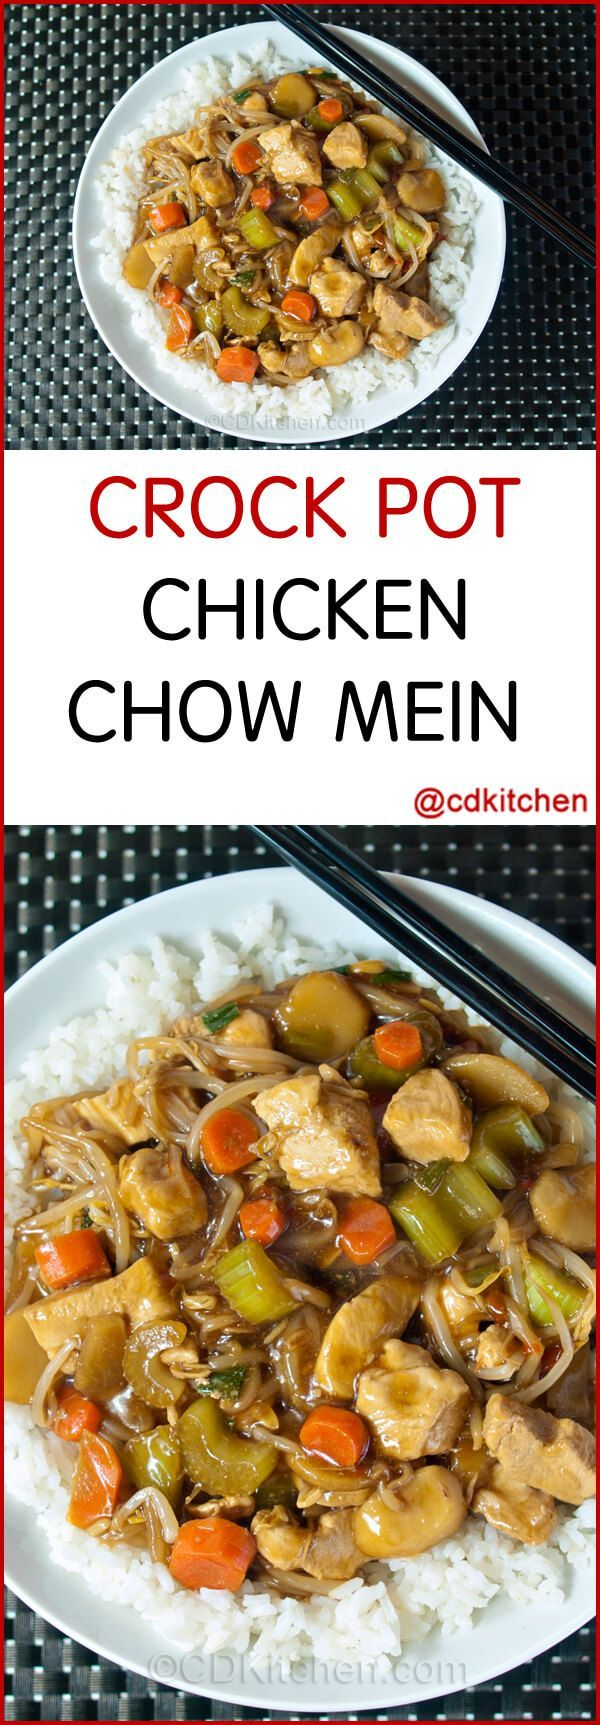 Slow Cooker Chicken Chow Mein With Water Chestnuts And Bean Sprouts - A tasty slow cooked chow mein made with chicken, carrots, green onion, celery, water chestnuts, and bean sprouts.| CDKitchen.com (Asian Recipes Crockpot)